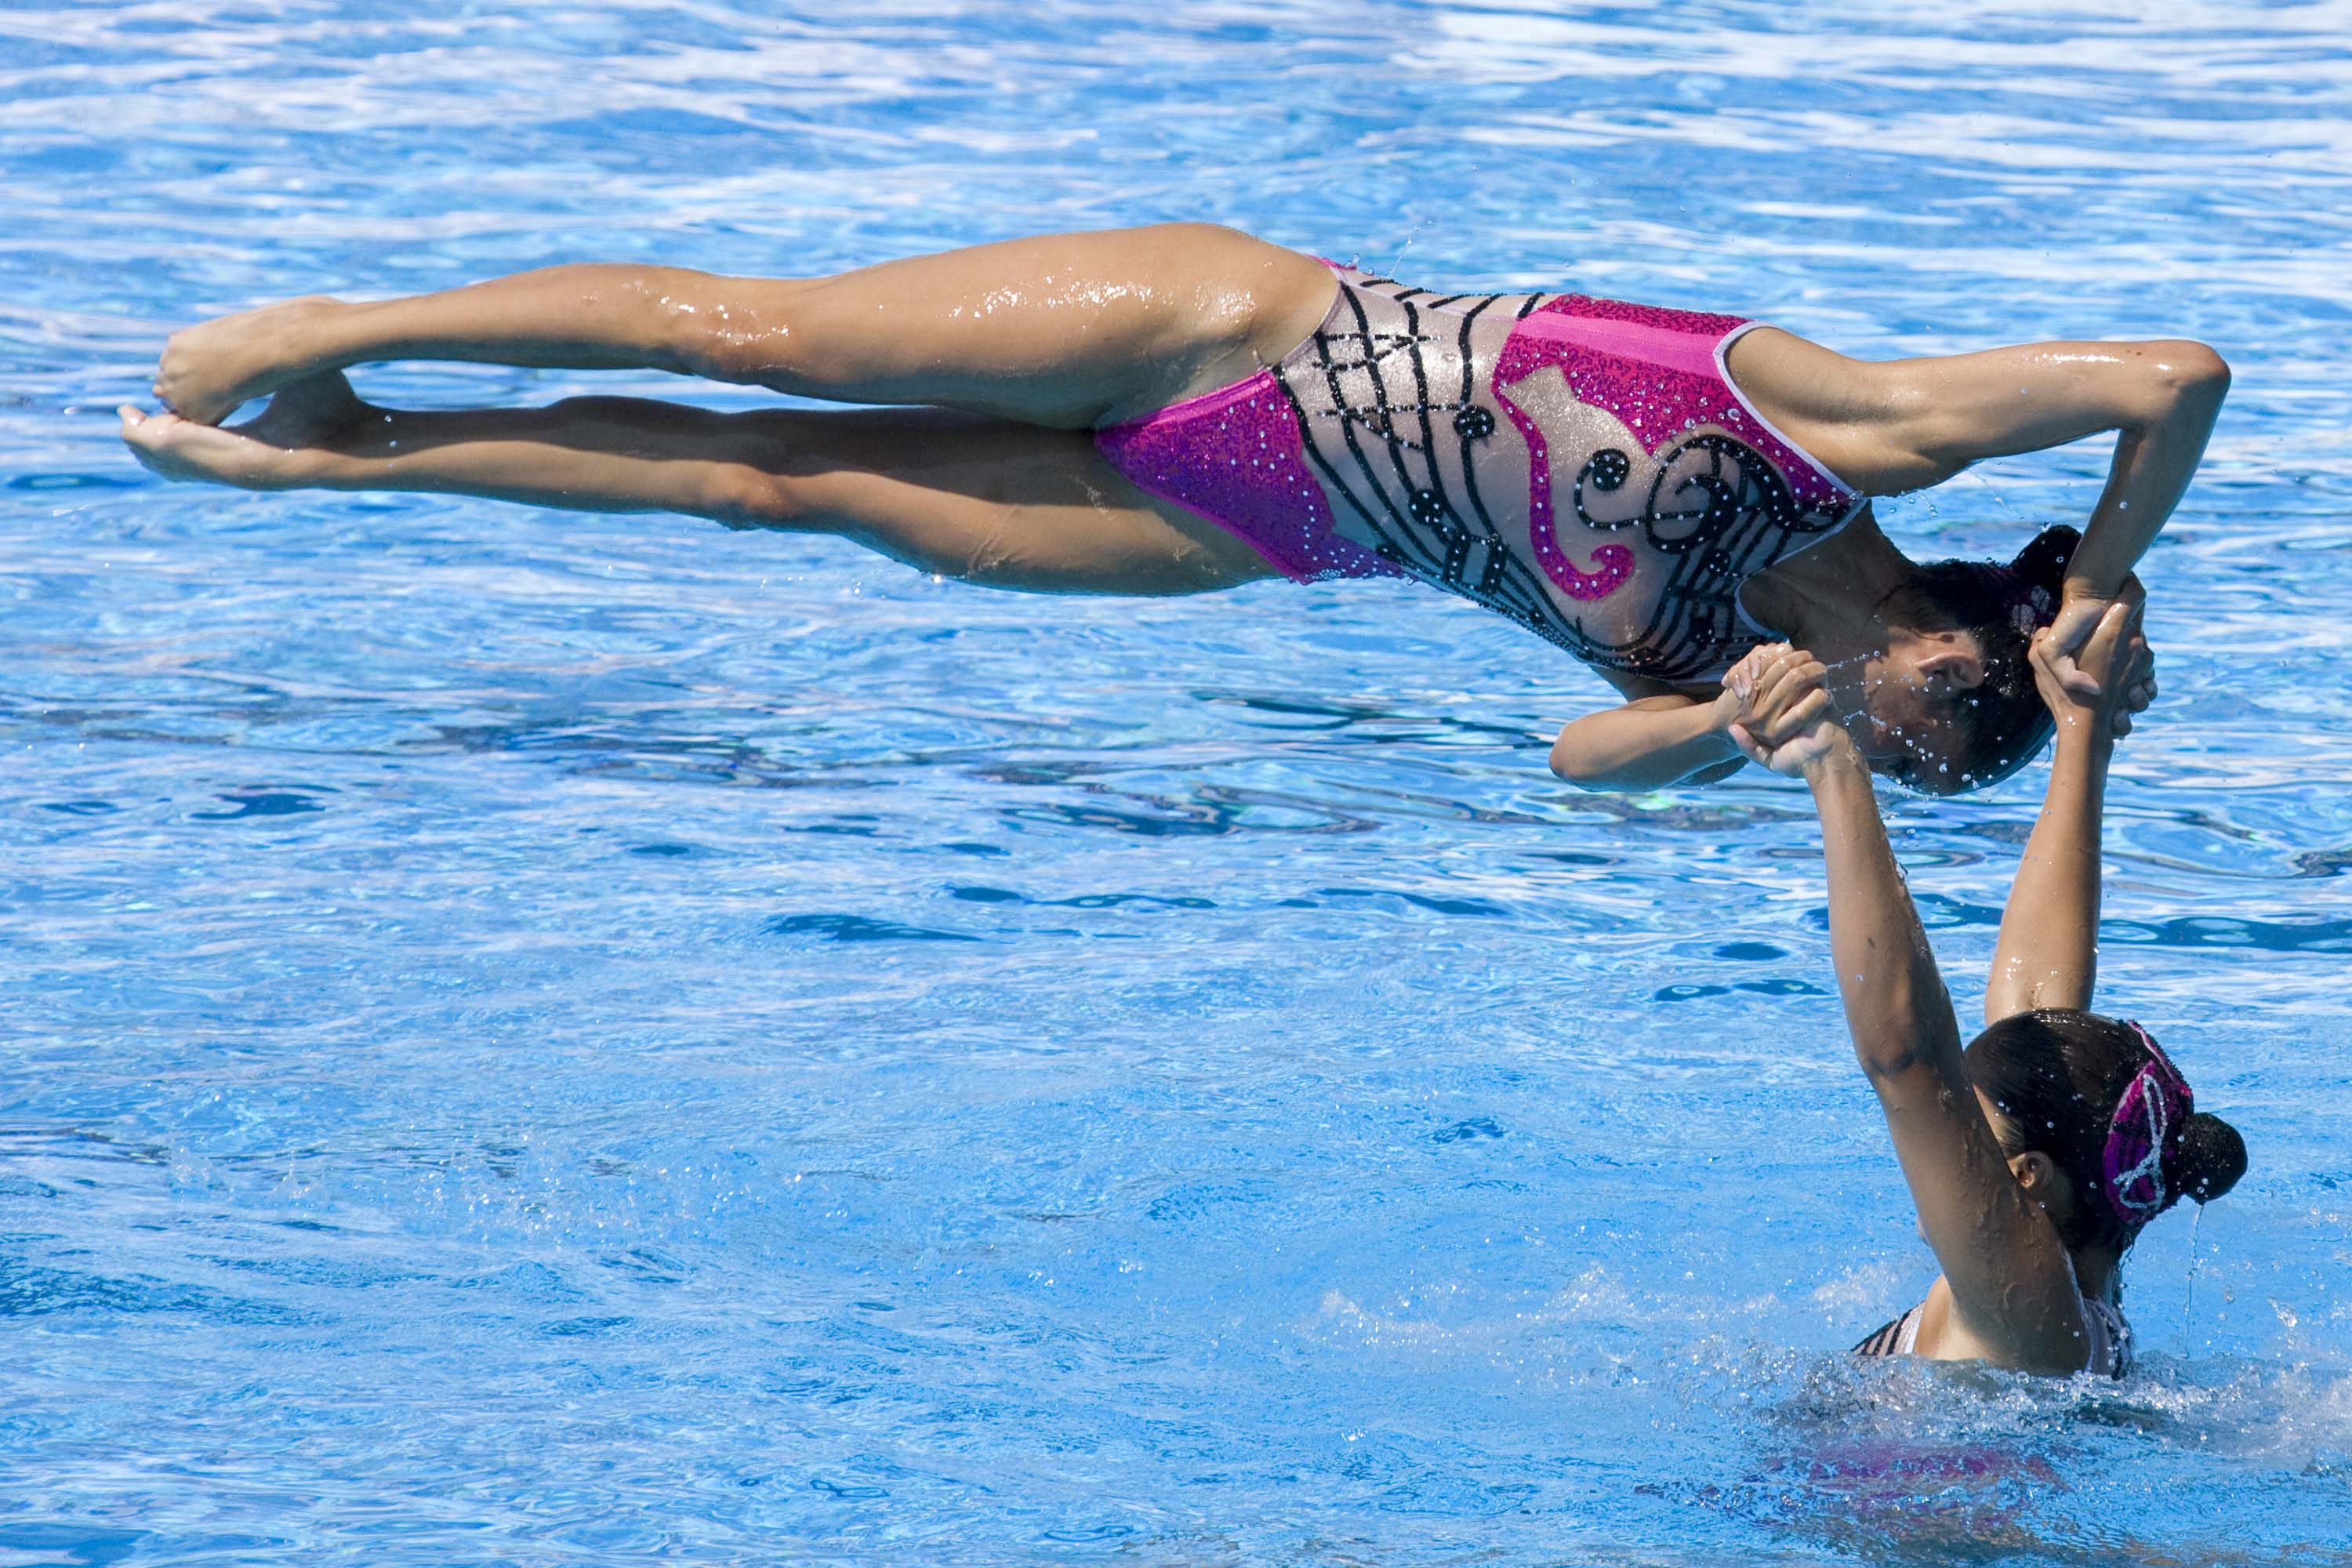 SP11 The art of synchronized swimming - 2